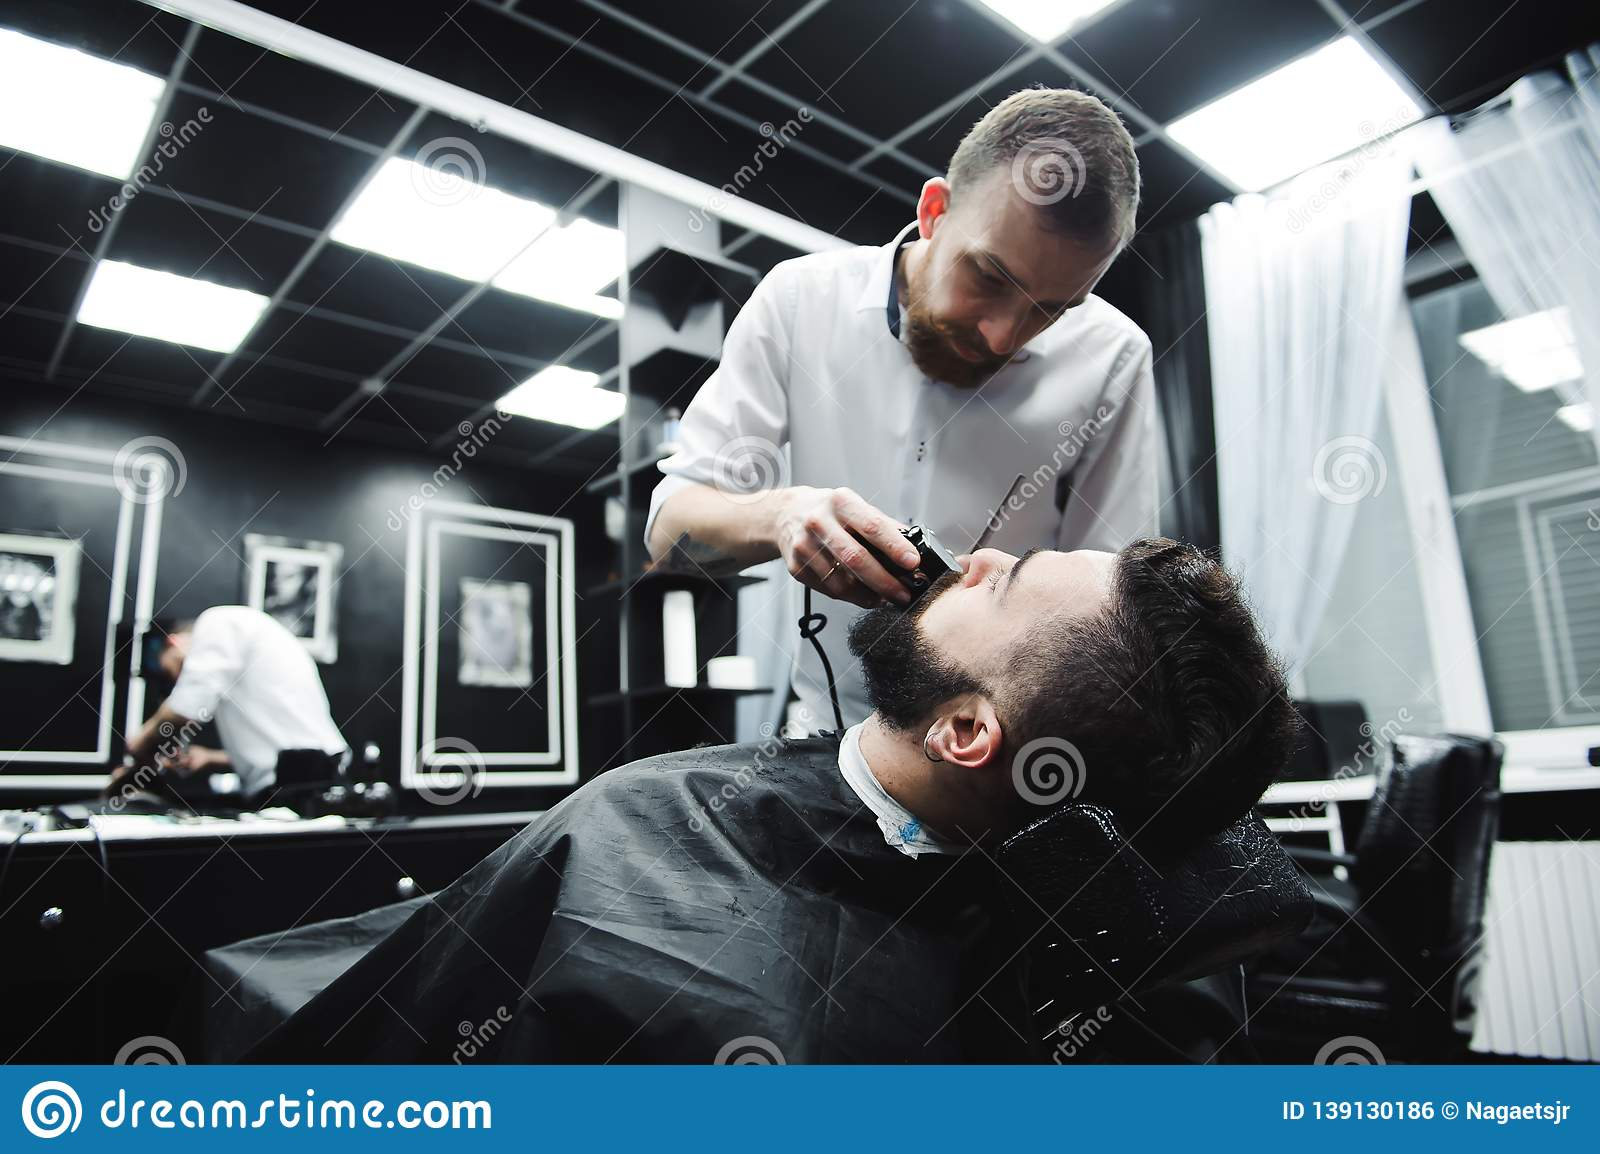 Master cuts hair and beard of men in the barbershop, hairdresser